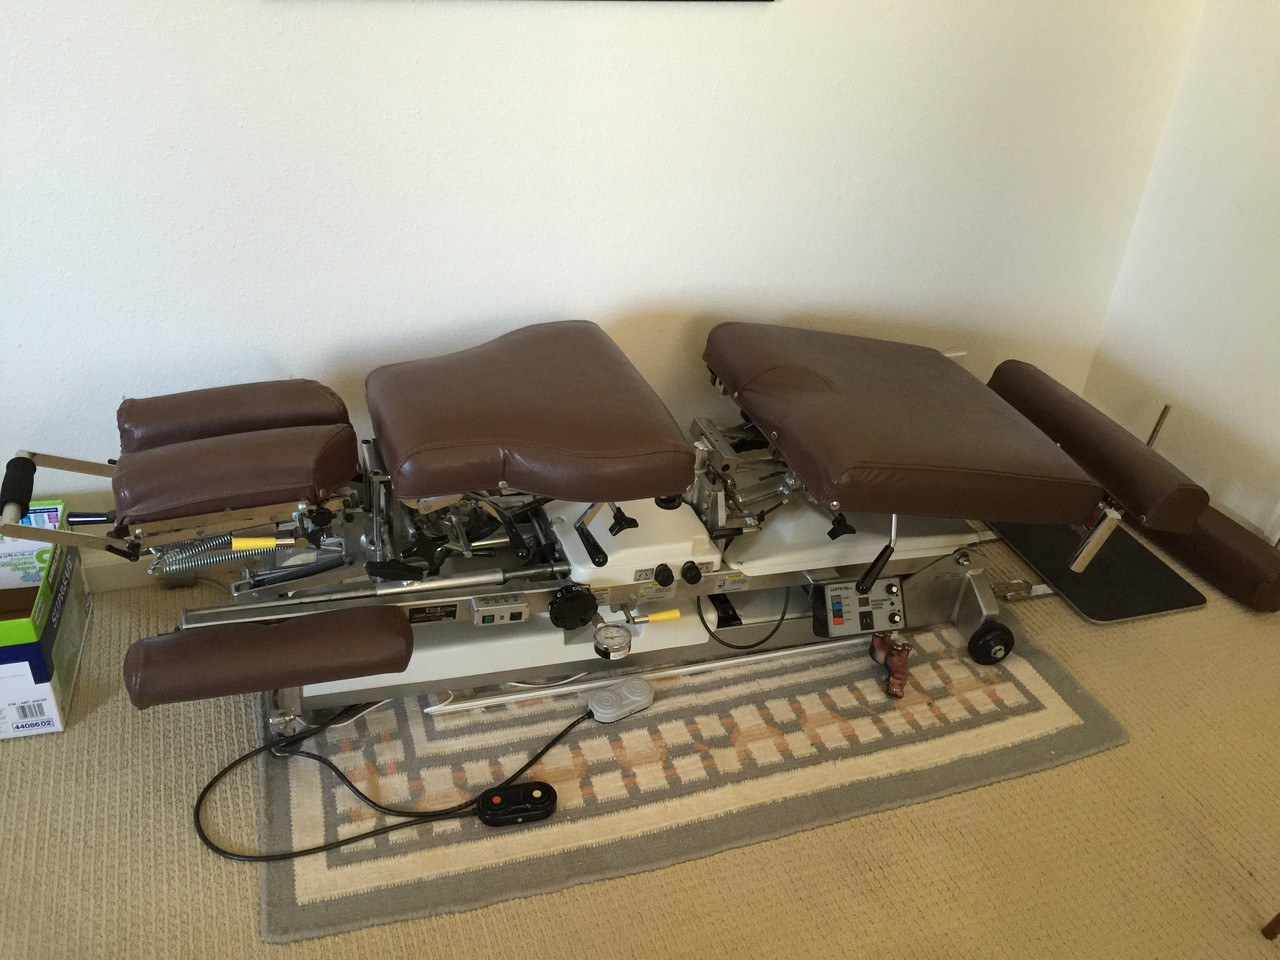 Used Lloyd Galaxy Flexion Hylo  Auto & Manual Flexion Table / Manual  Dorsal , Lumbar Pelvic Drop  with Deluxe Flexion Cervical